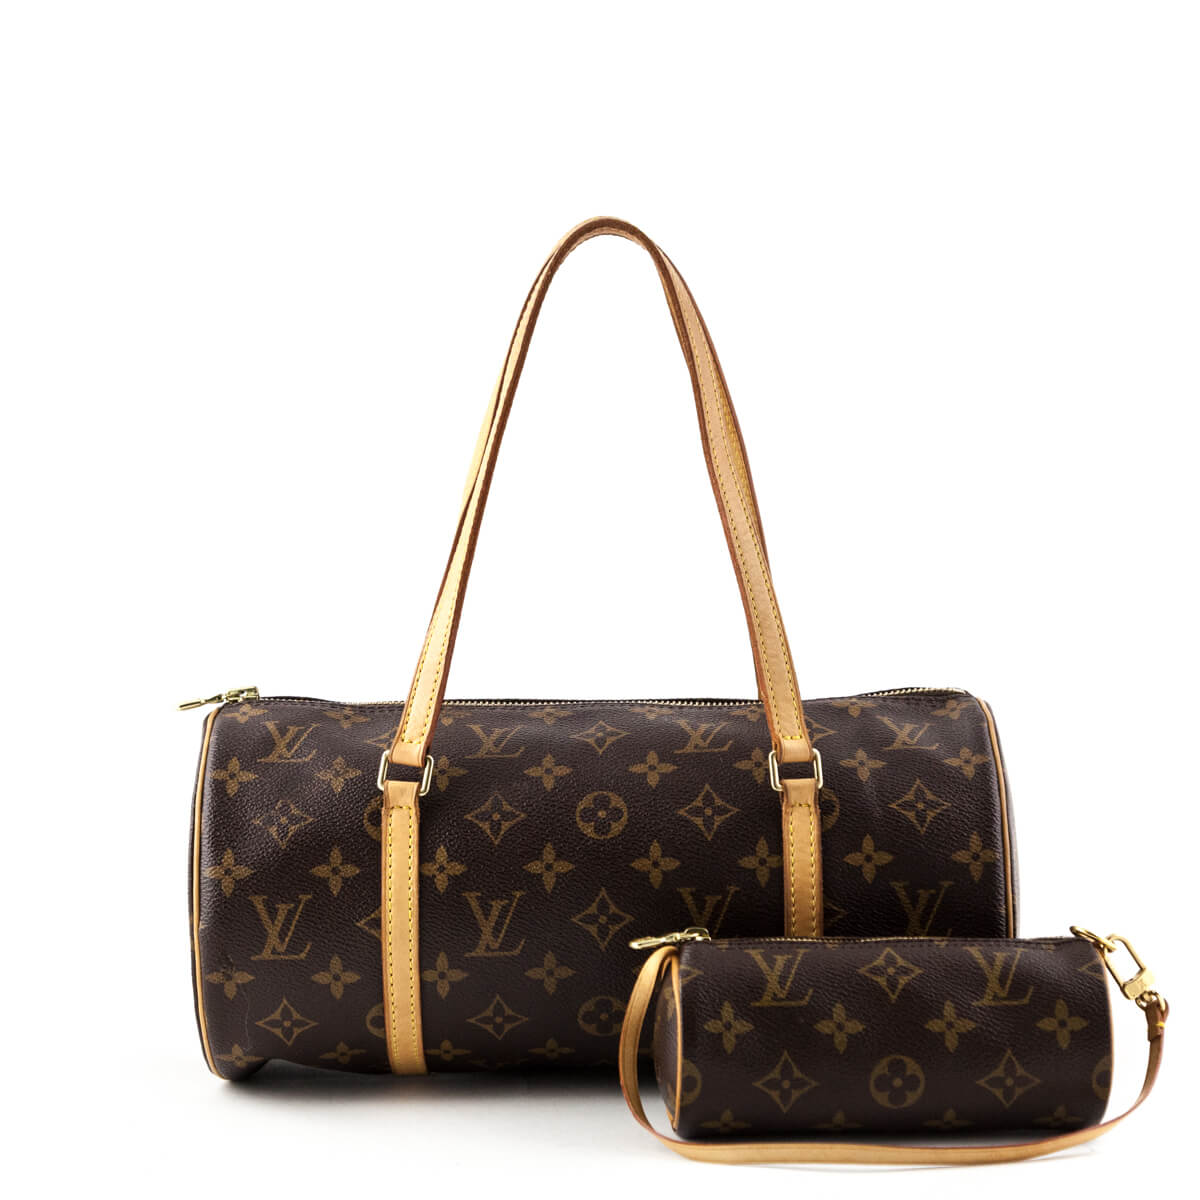 3f1050bbdb Louis Vuitton Monogram Papillon 30 with Pouch - LOVE that BAG - Preowned  Authentic Designer Handbags ...